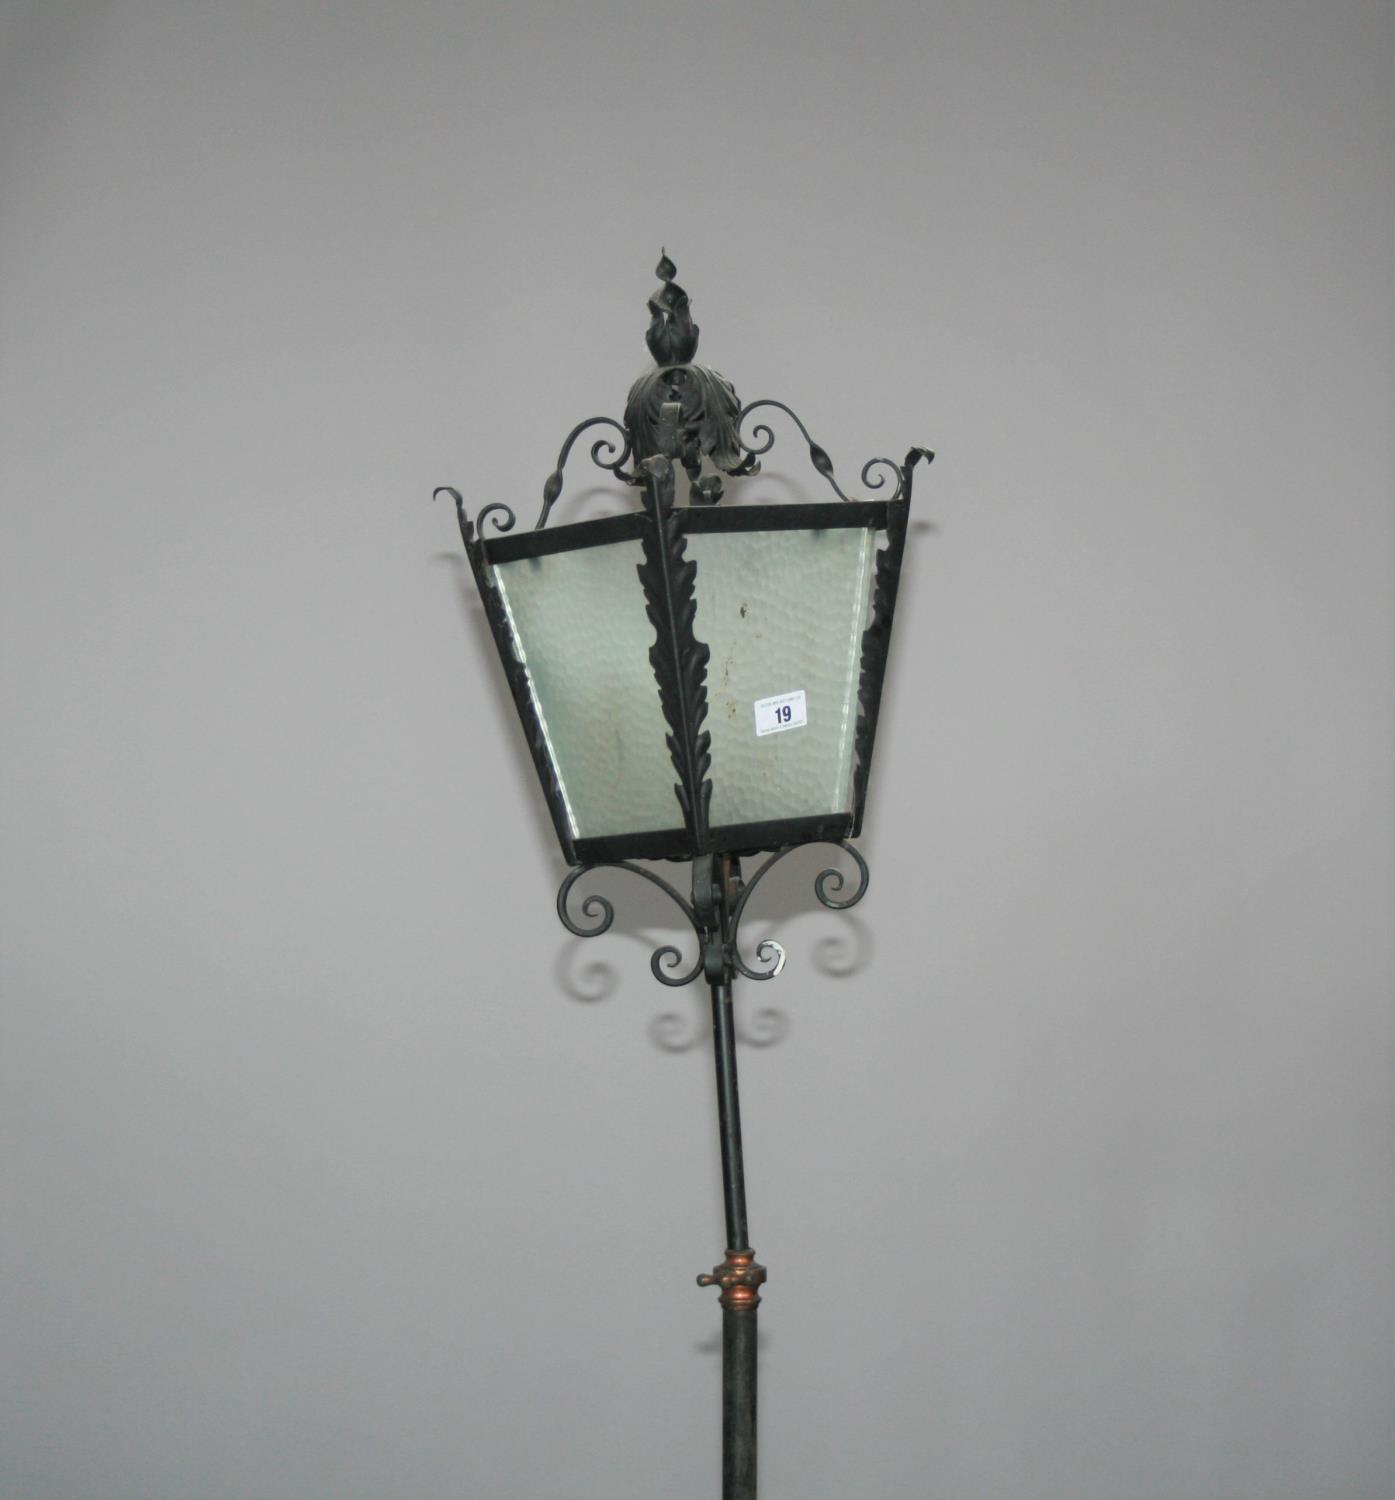 Wrought iron and copper telescopic lamp with lantern top 40 W x 90 H - Image 3 of 3